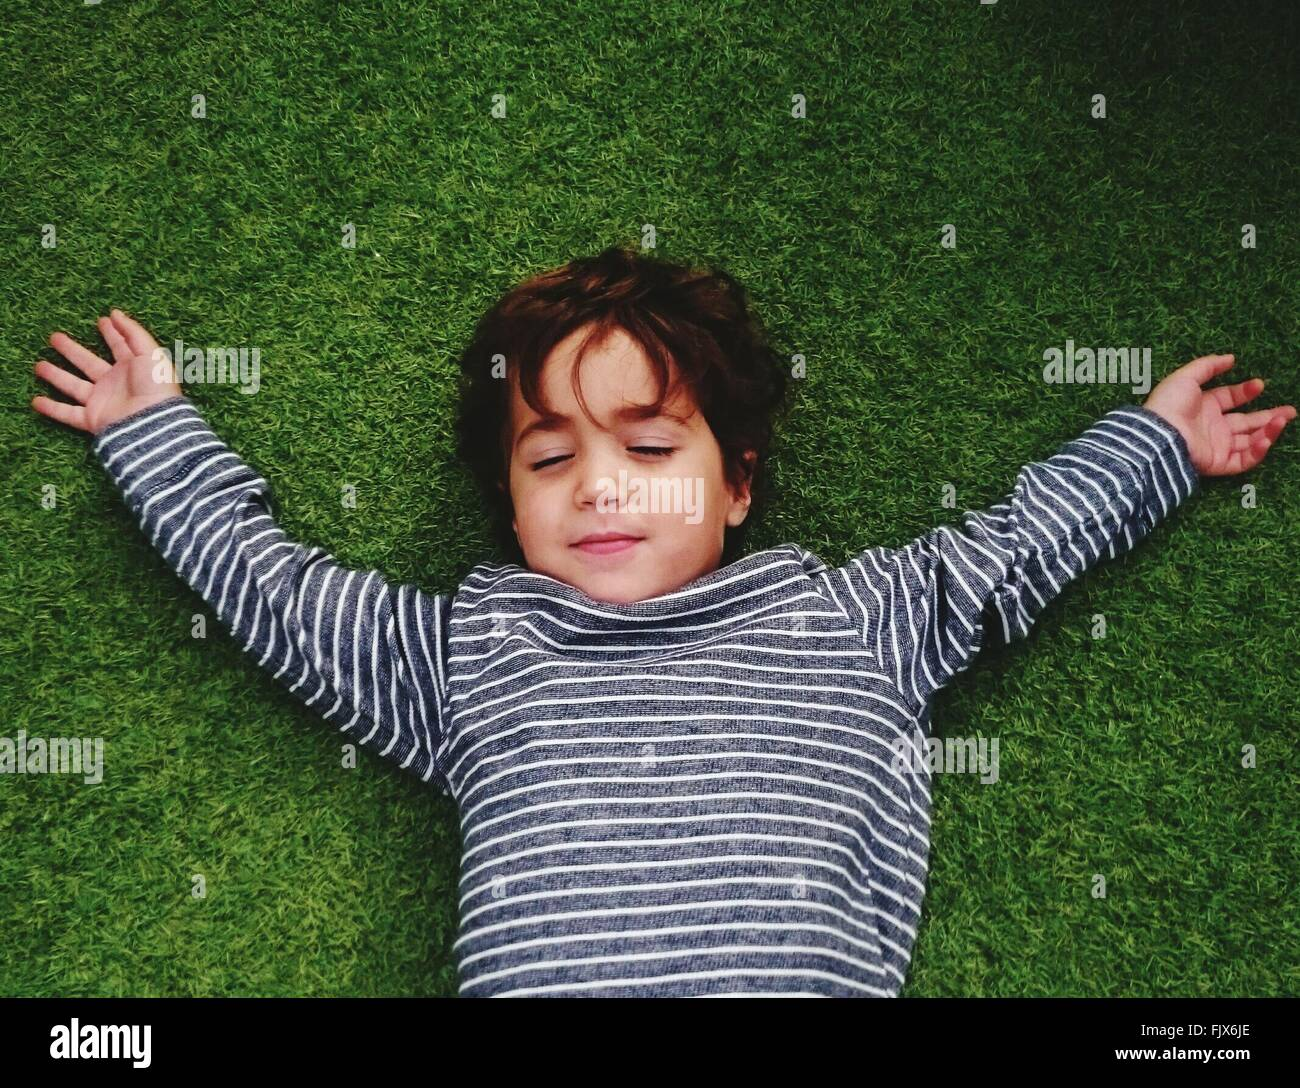 High Angle View Of Cute Boy Resting On Grassy Field - Stock Image